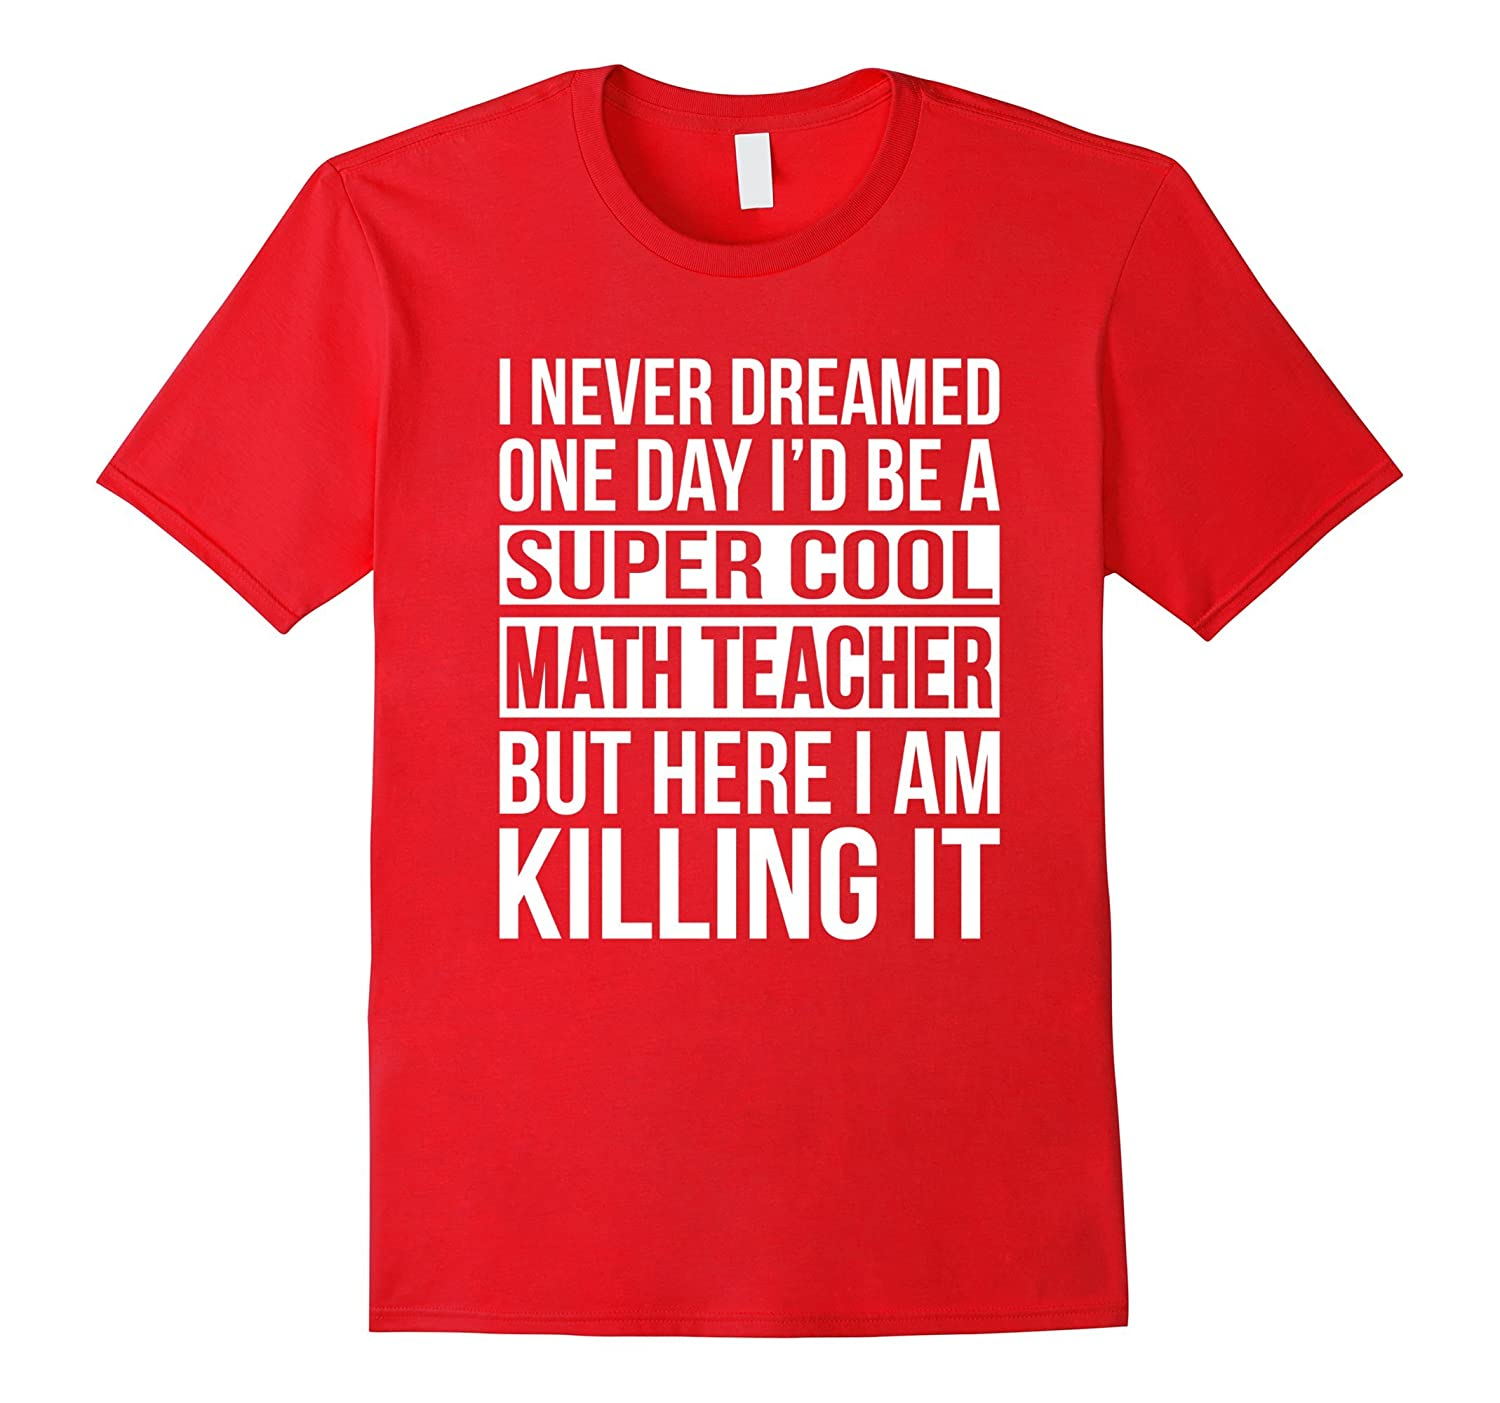 Super Cool Math Teacher T-Shirt Funny School Gift-ANZ